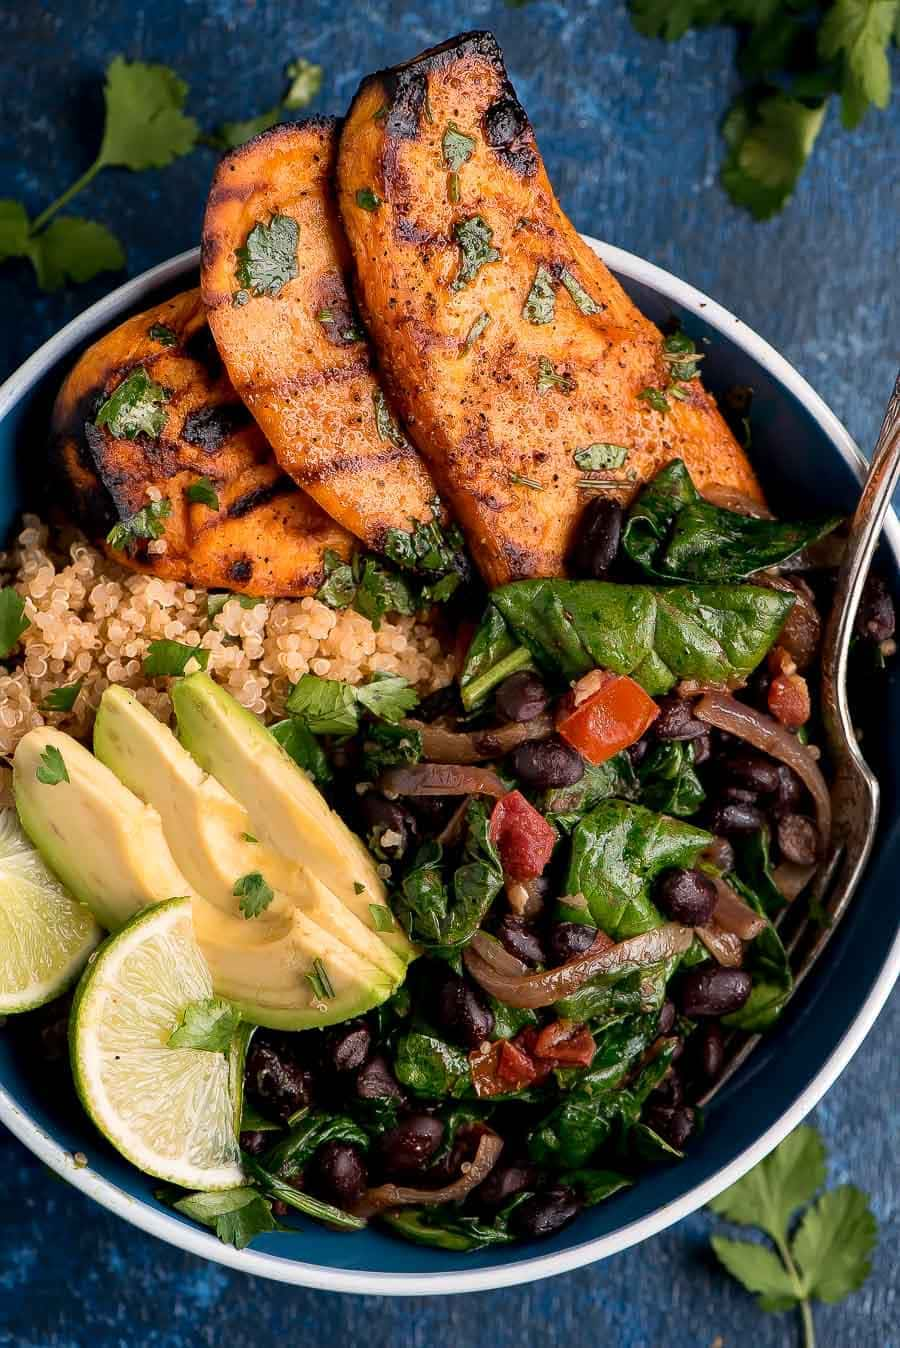 Spinach and Sweet Potato Quinoa Bowl topped with avocado and cilantro